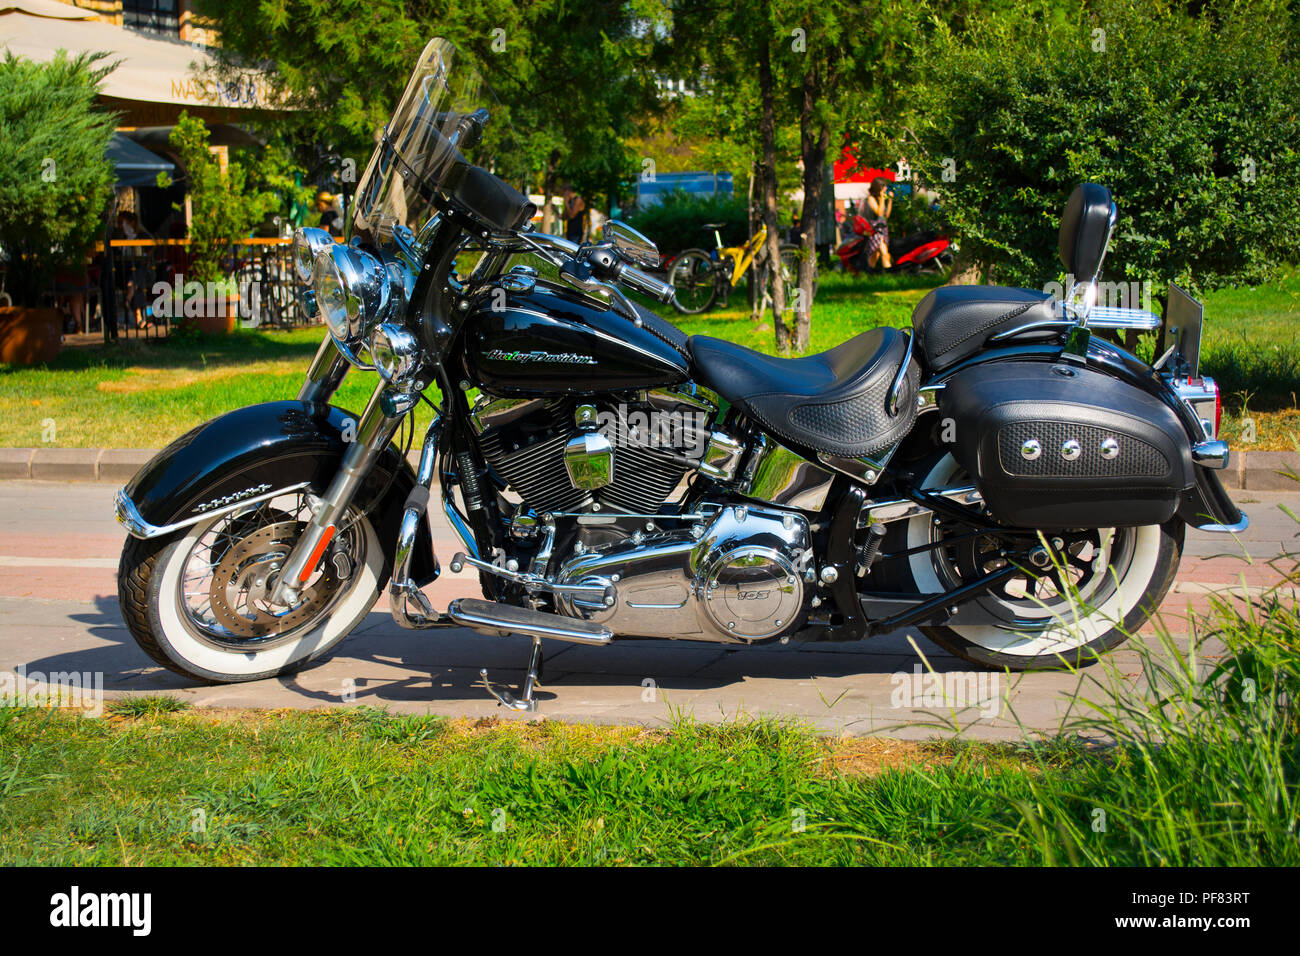 American Style Motorcycle Stock Photos 1983 Honda Shadow Bagger Istanbul Turkey August 08 2018 Brand New Light Black With Street